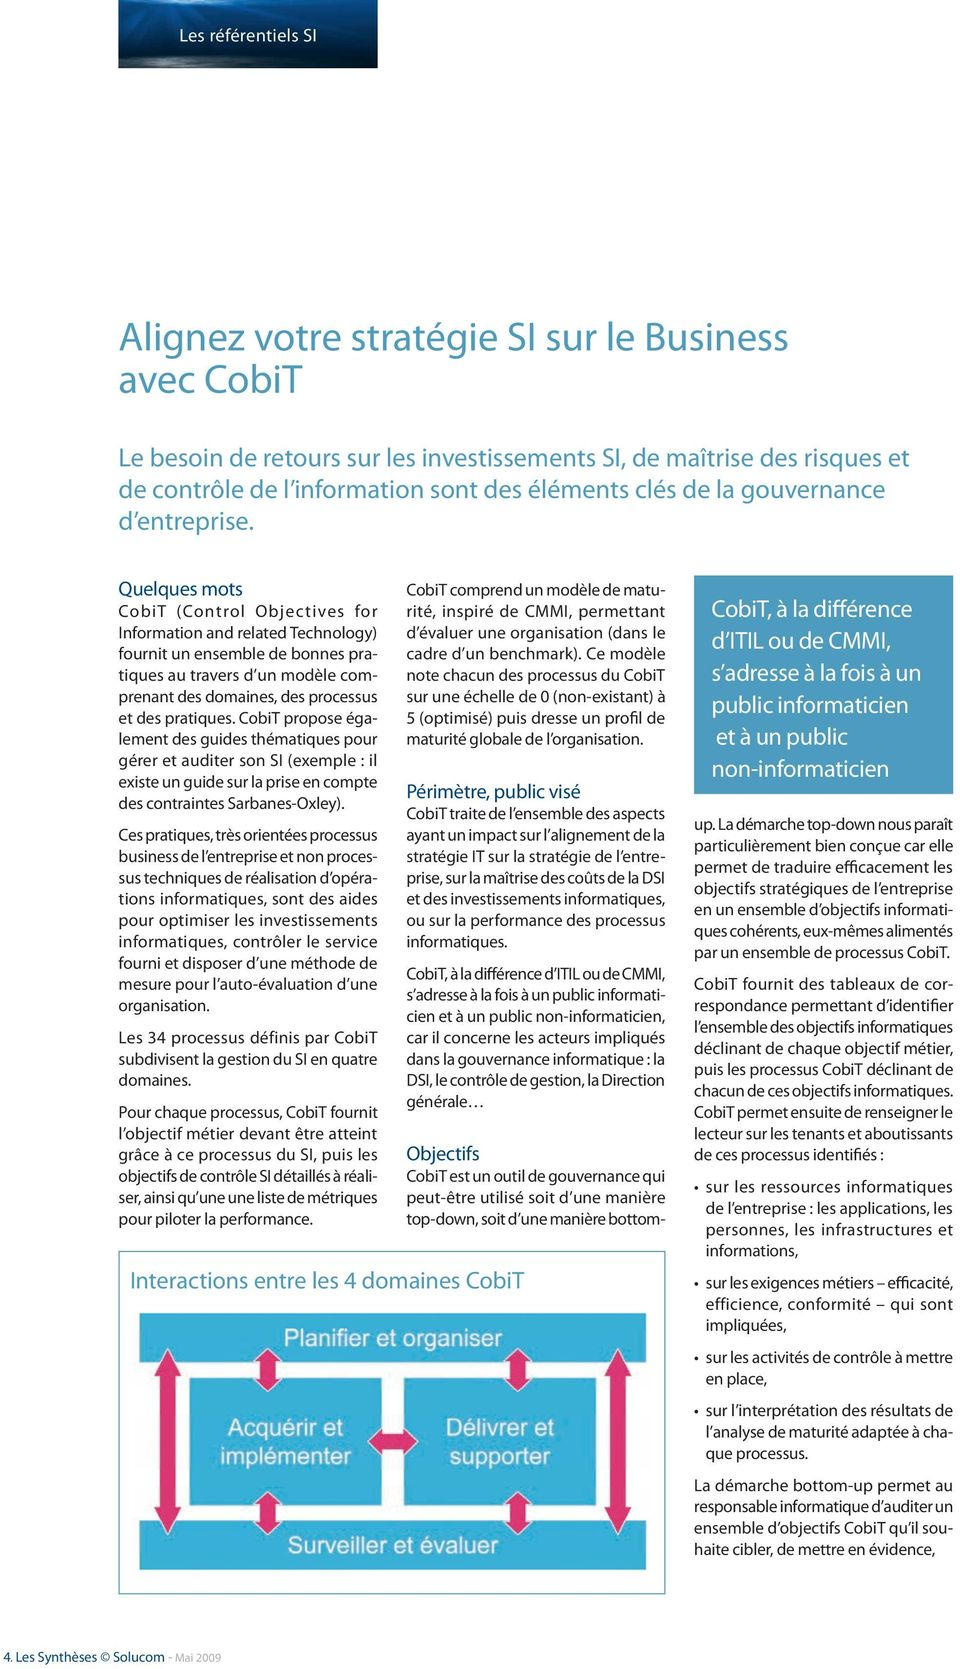 Quelques mots CobiT (Control Objectives for Information and related Technology) fournit un ensemble de bonnes pratiques au travers d un modèle comprenant des domaines, des processus et des pratiques.